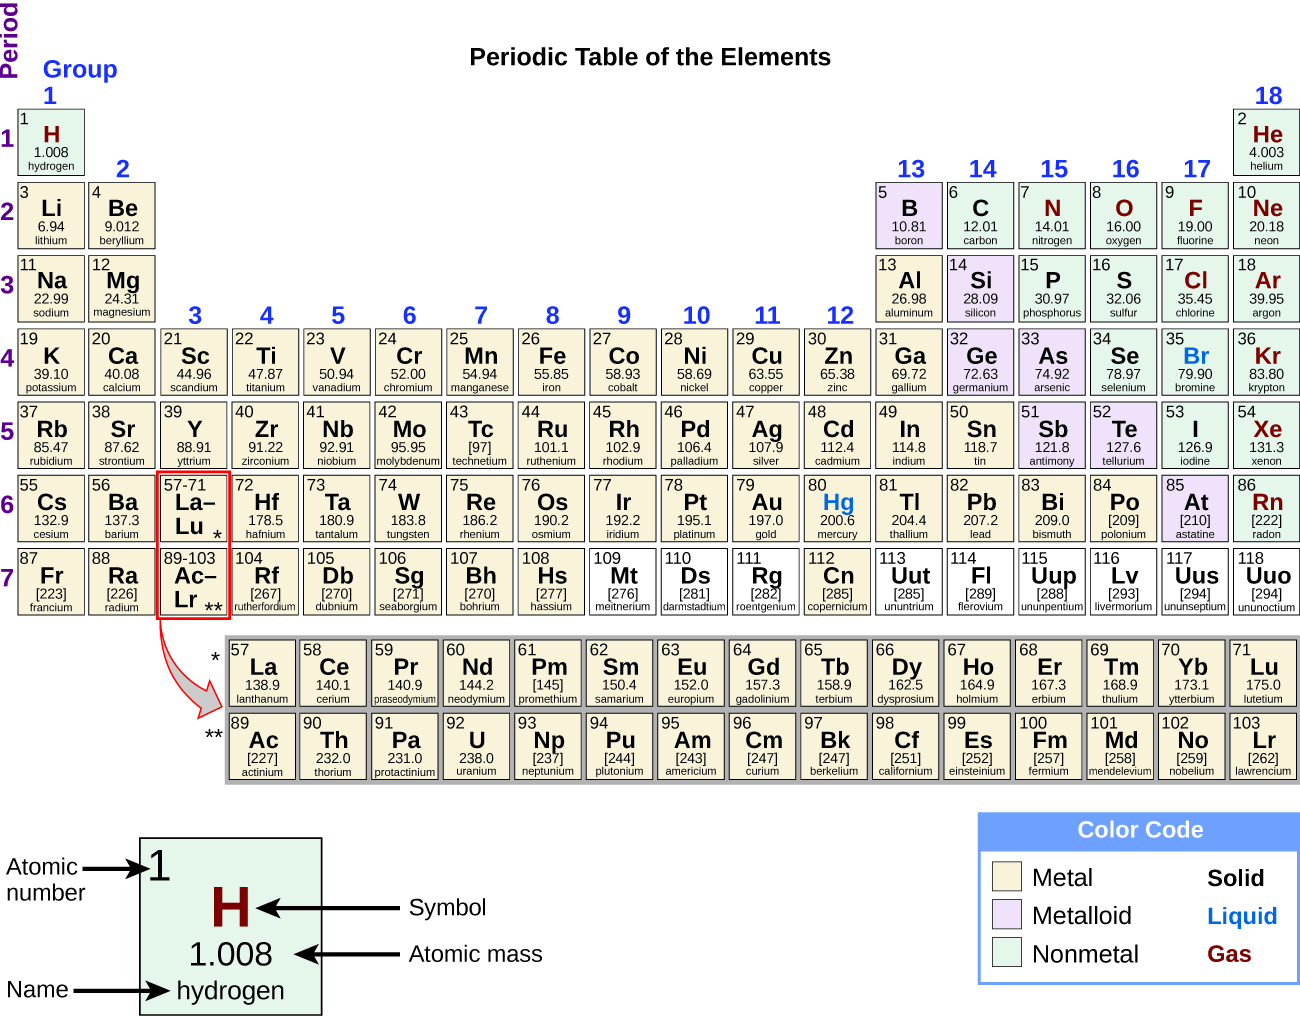 Occurrence Preparation And Properties Of Transition Metals F Block Orbital Diagram The Periodic Table Elements Is Shown 18 Columns Are Labeled Group